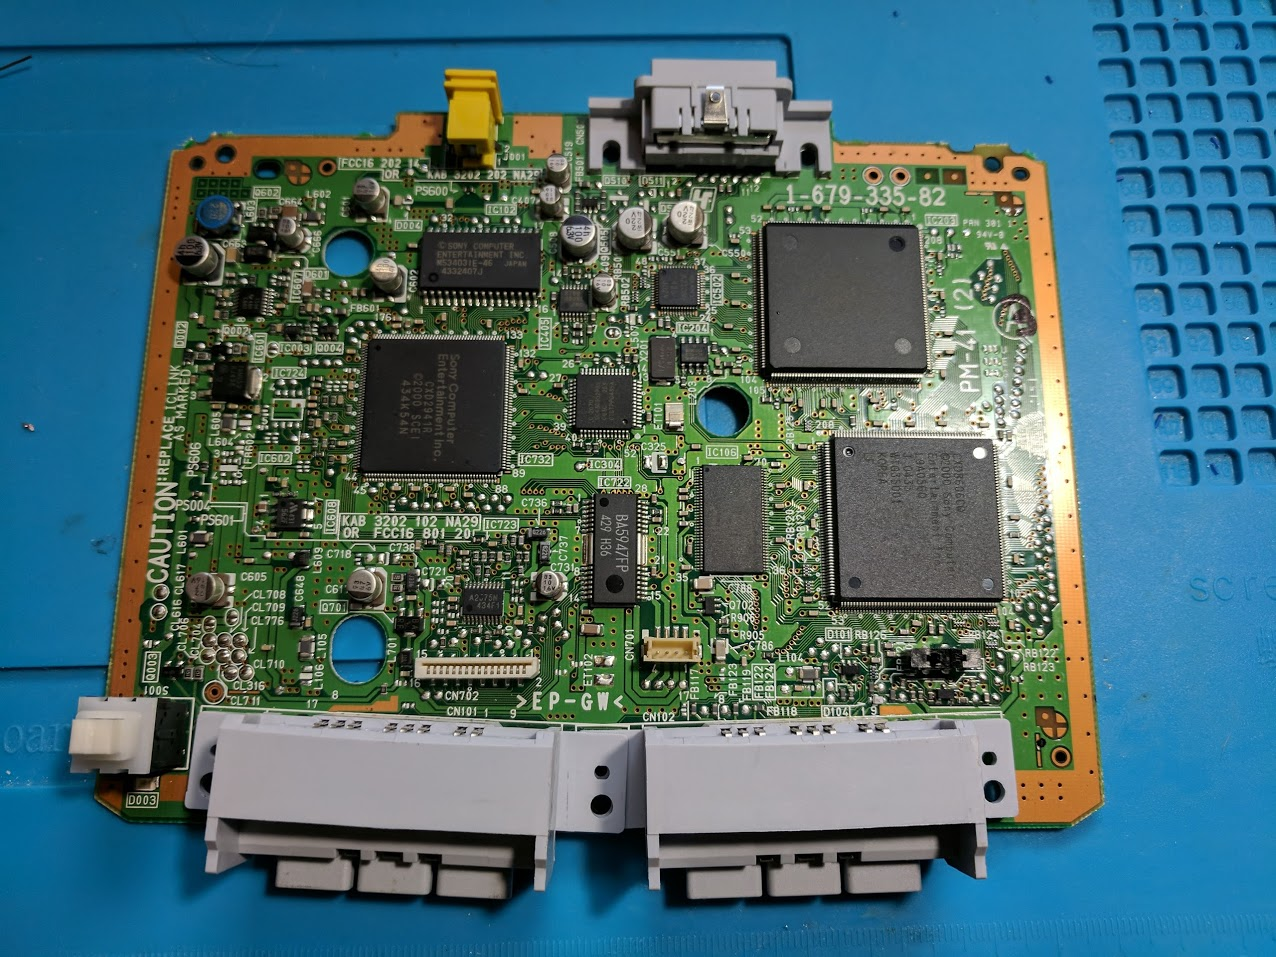 PM-41 (2) PSone MM3 modchip installation (PIC12F629